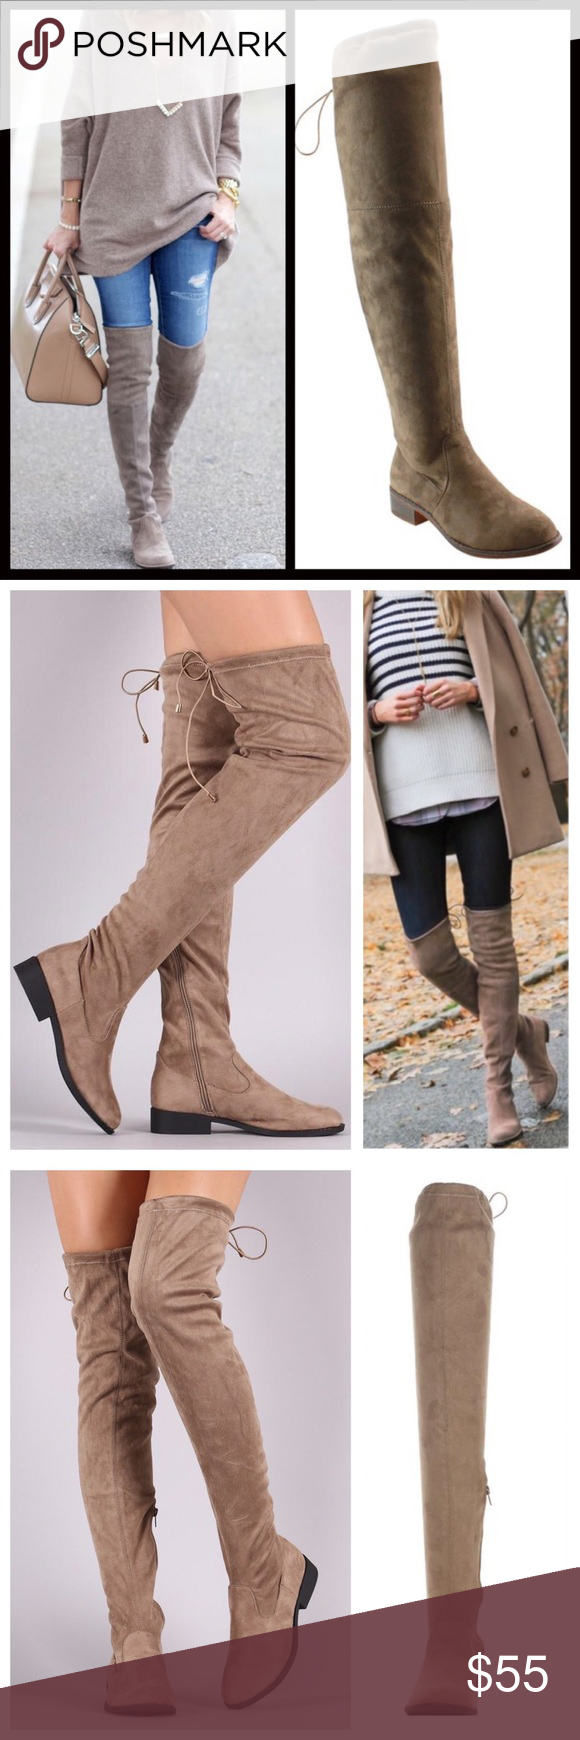 28ea4ffc45a AVA Taupe Over the Knee Flat Boot Faux Stretch Suede with lace up detail at  top of back. Super comfy and the suede is extremely soft!